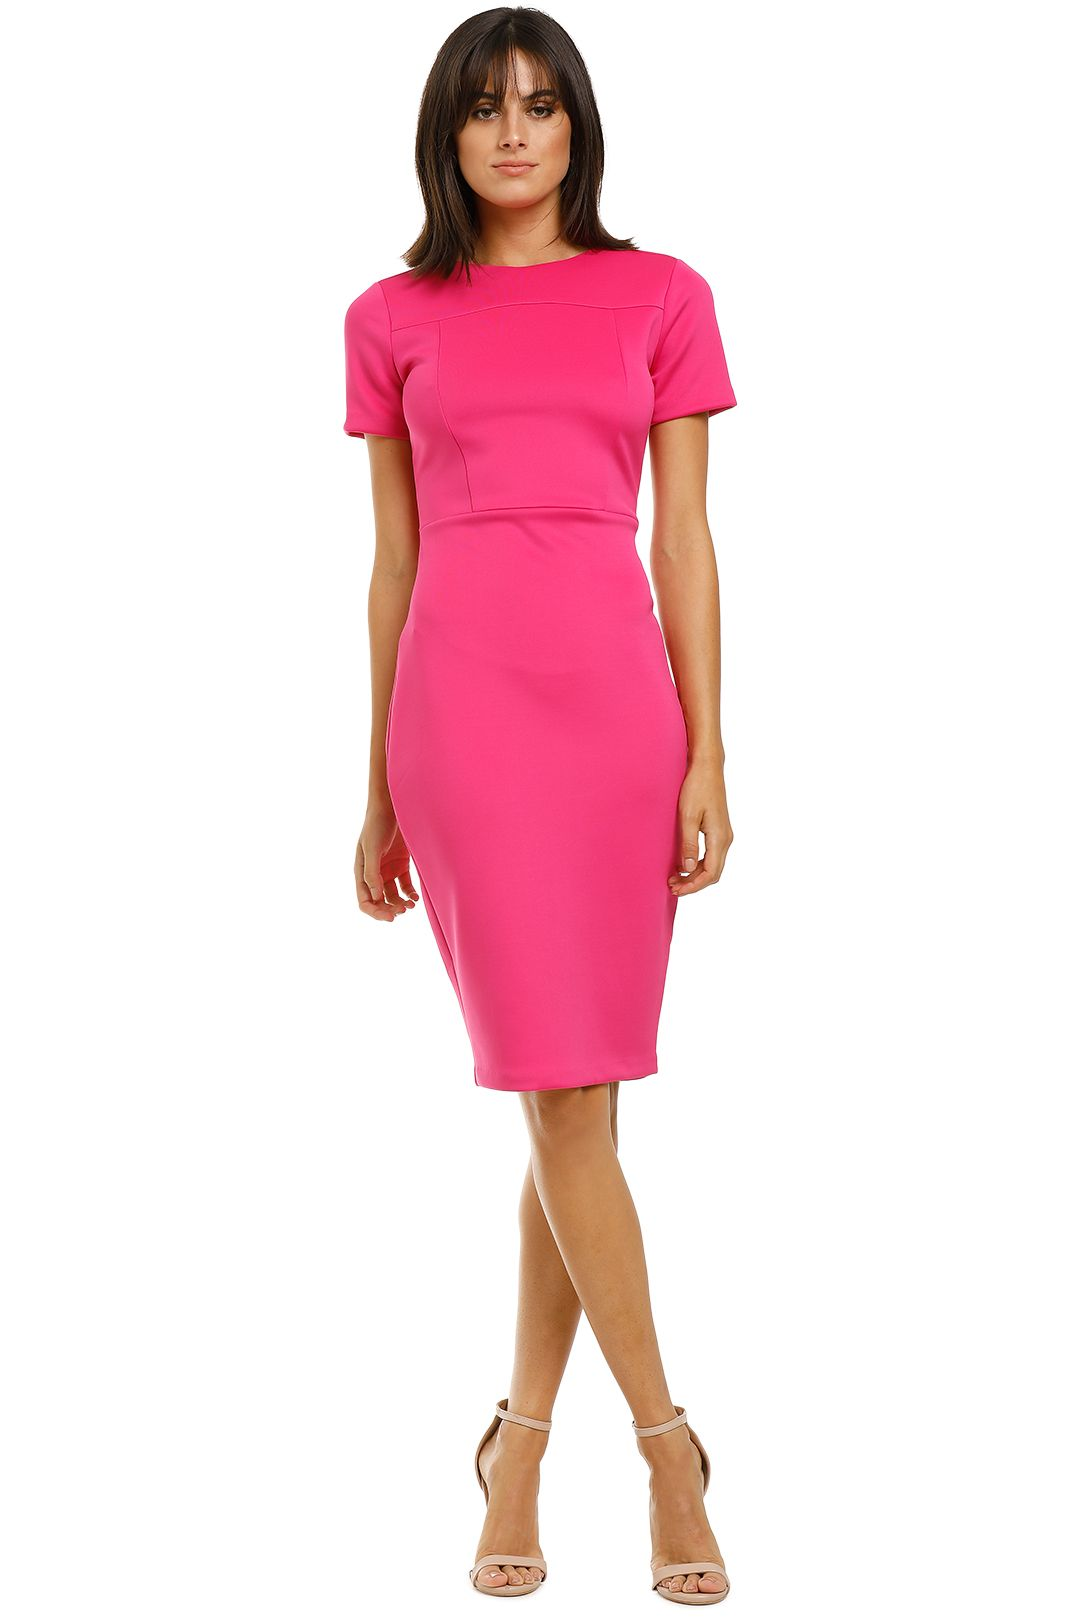 Alexia-Admor-Scuba-Sheath-Dress-Hot-Pink-Front